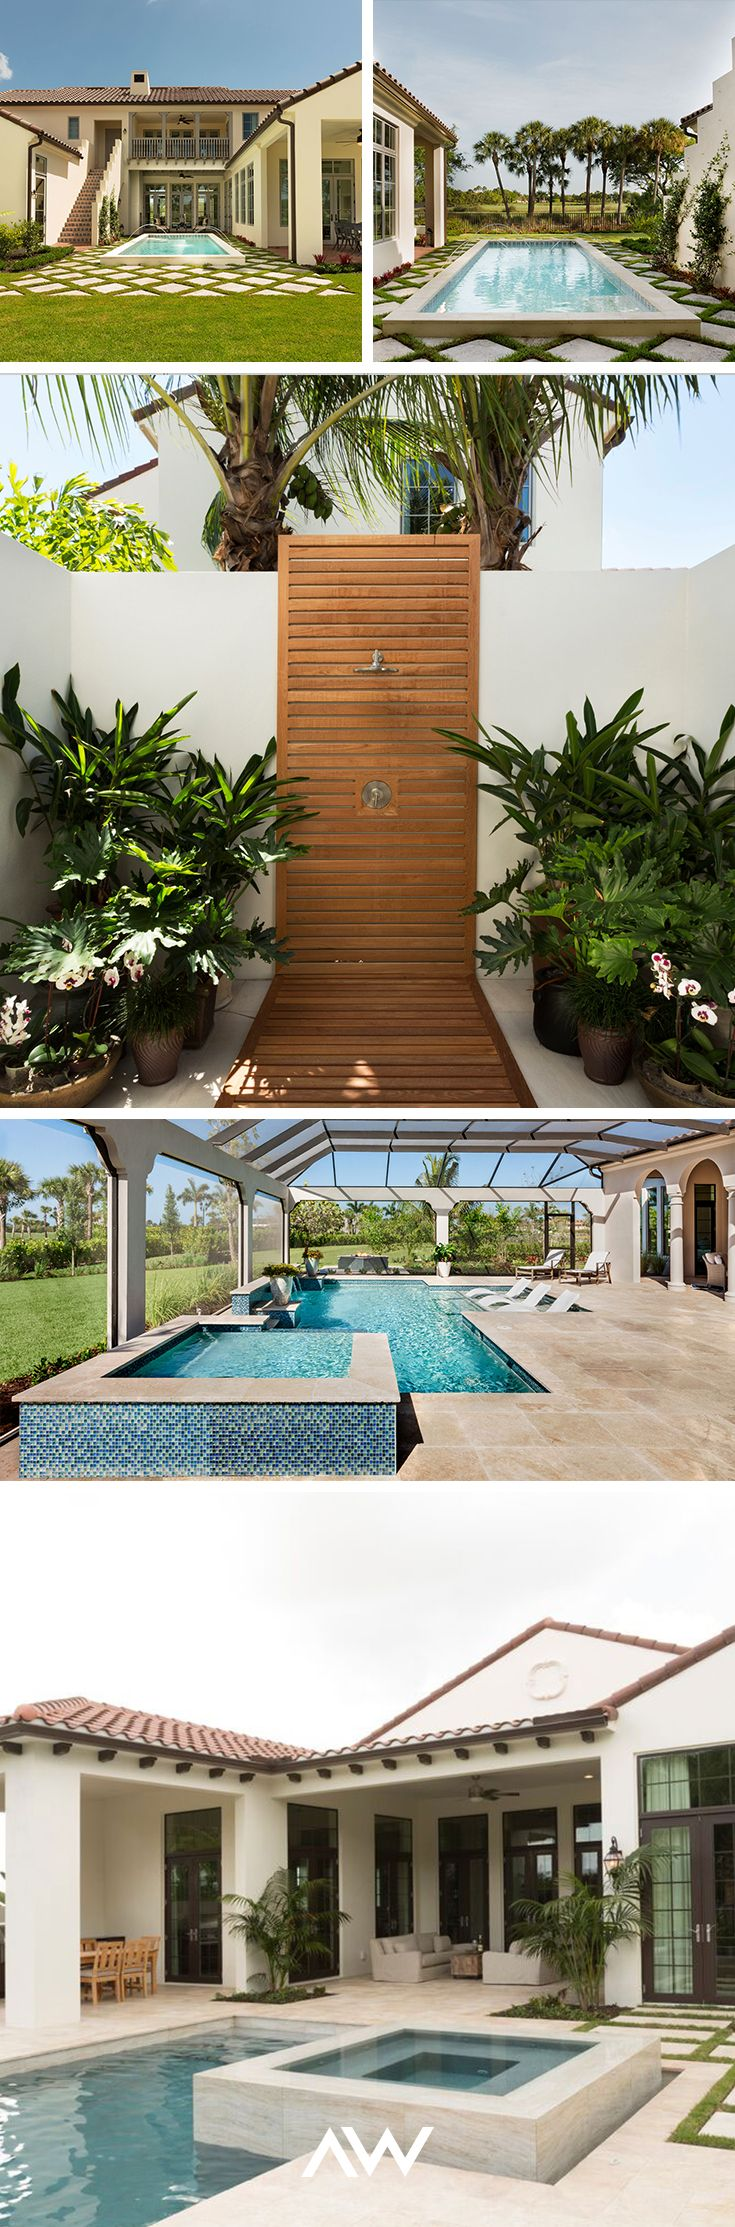 Warm weather is the perfect time to really make the most of your home s  outdoor spaces28 best Outdoor Living   Ashton Woods images on Pinterest  . Indoor Outdoor Living Lafayette Louisiana. Home Design Ideas